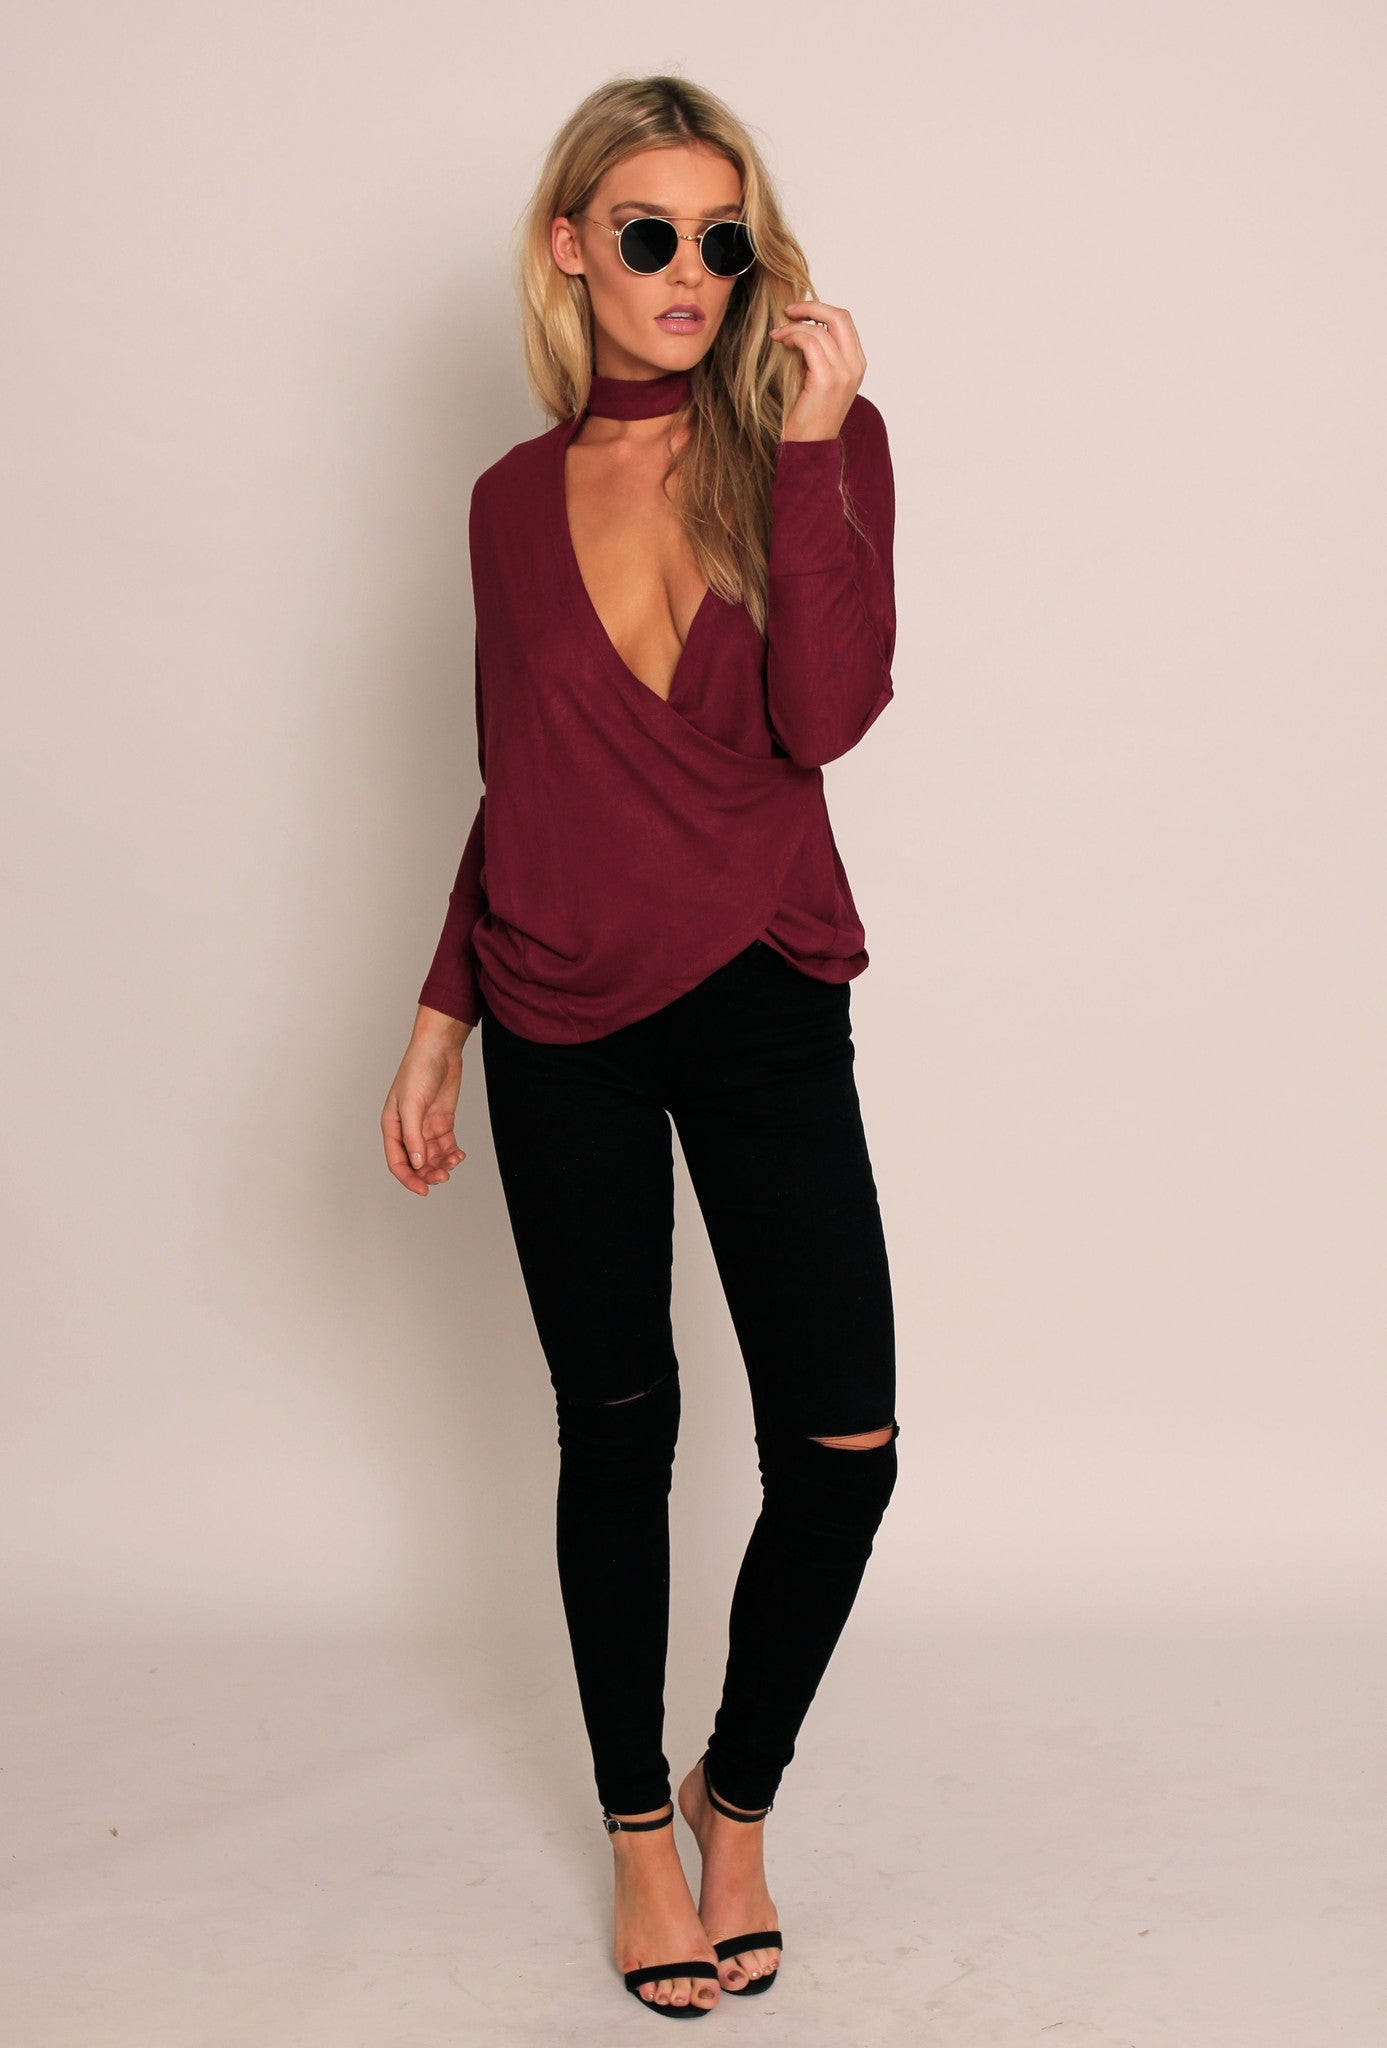 Ruby Reign Top - Wine